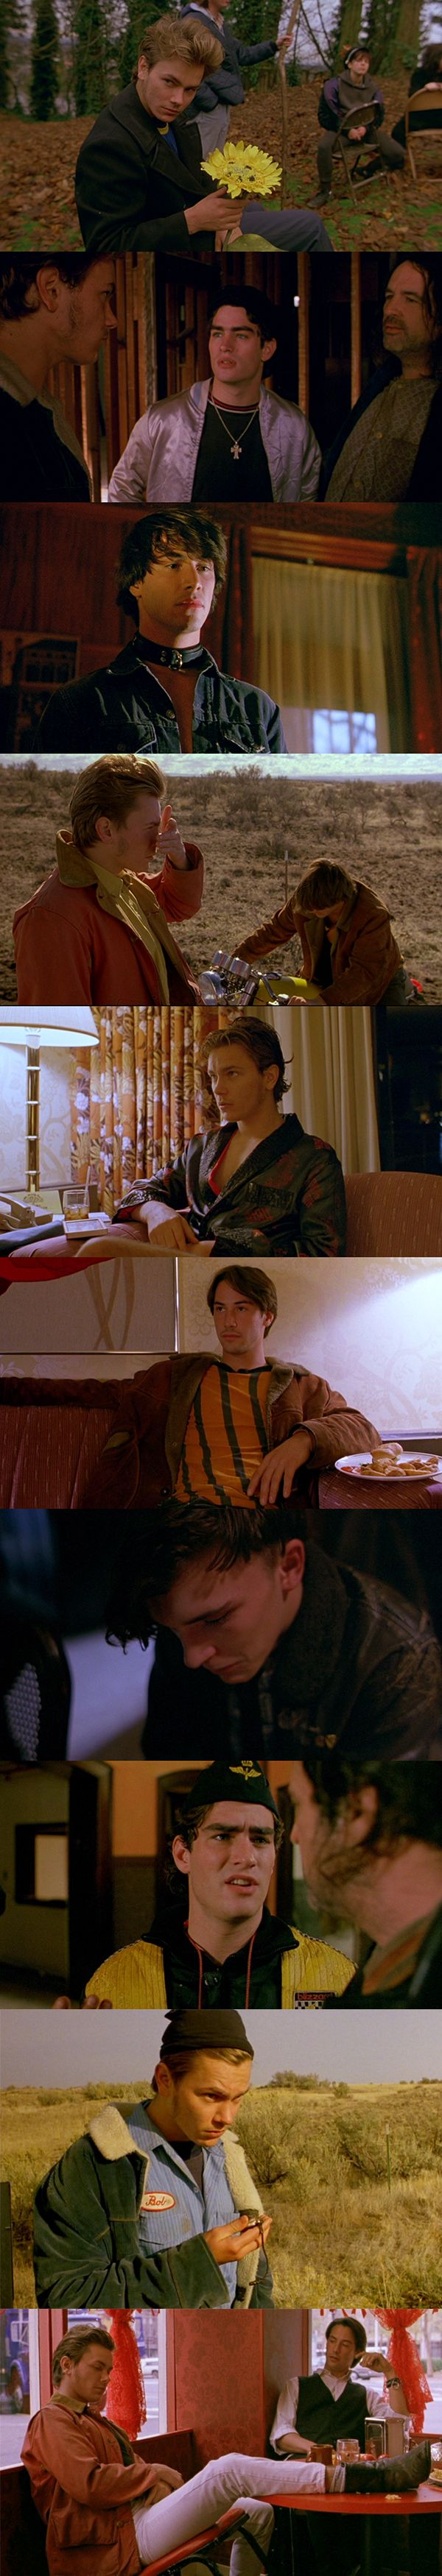 My Own Private Idaho. From the shearling coats to the leather jackets to the beatle boots, I love the styling of this movie. Great clothes that look so casual, effortless, and smart. Wonder what happened to all those clothes?